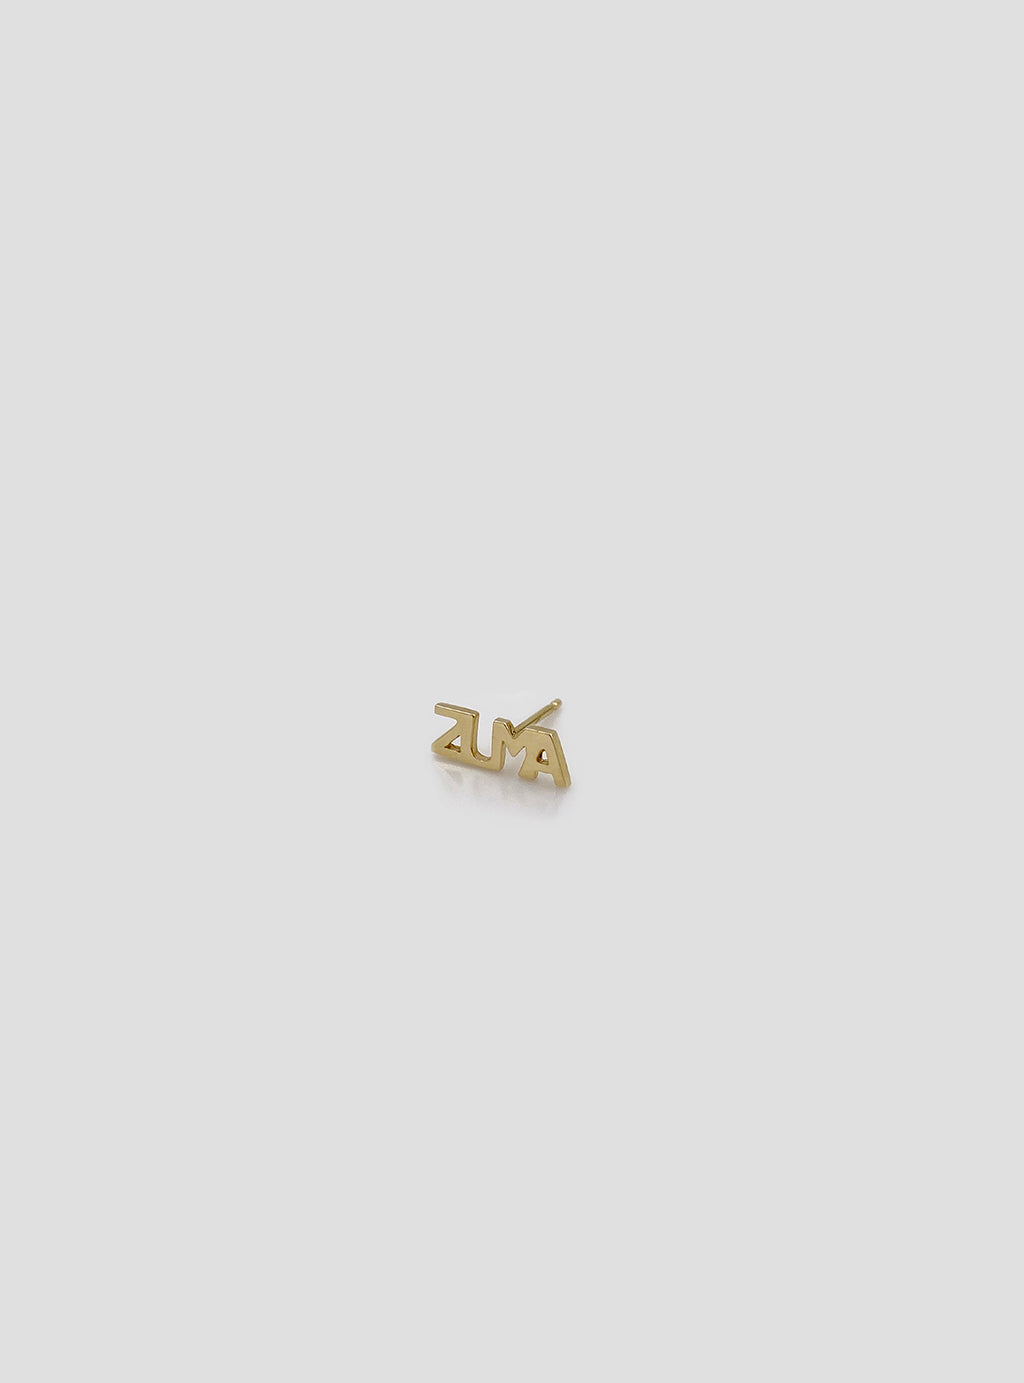 2D Zuma Stud, single earring